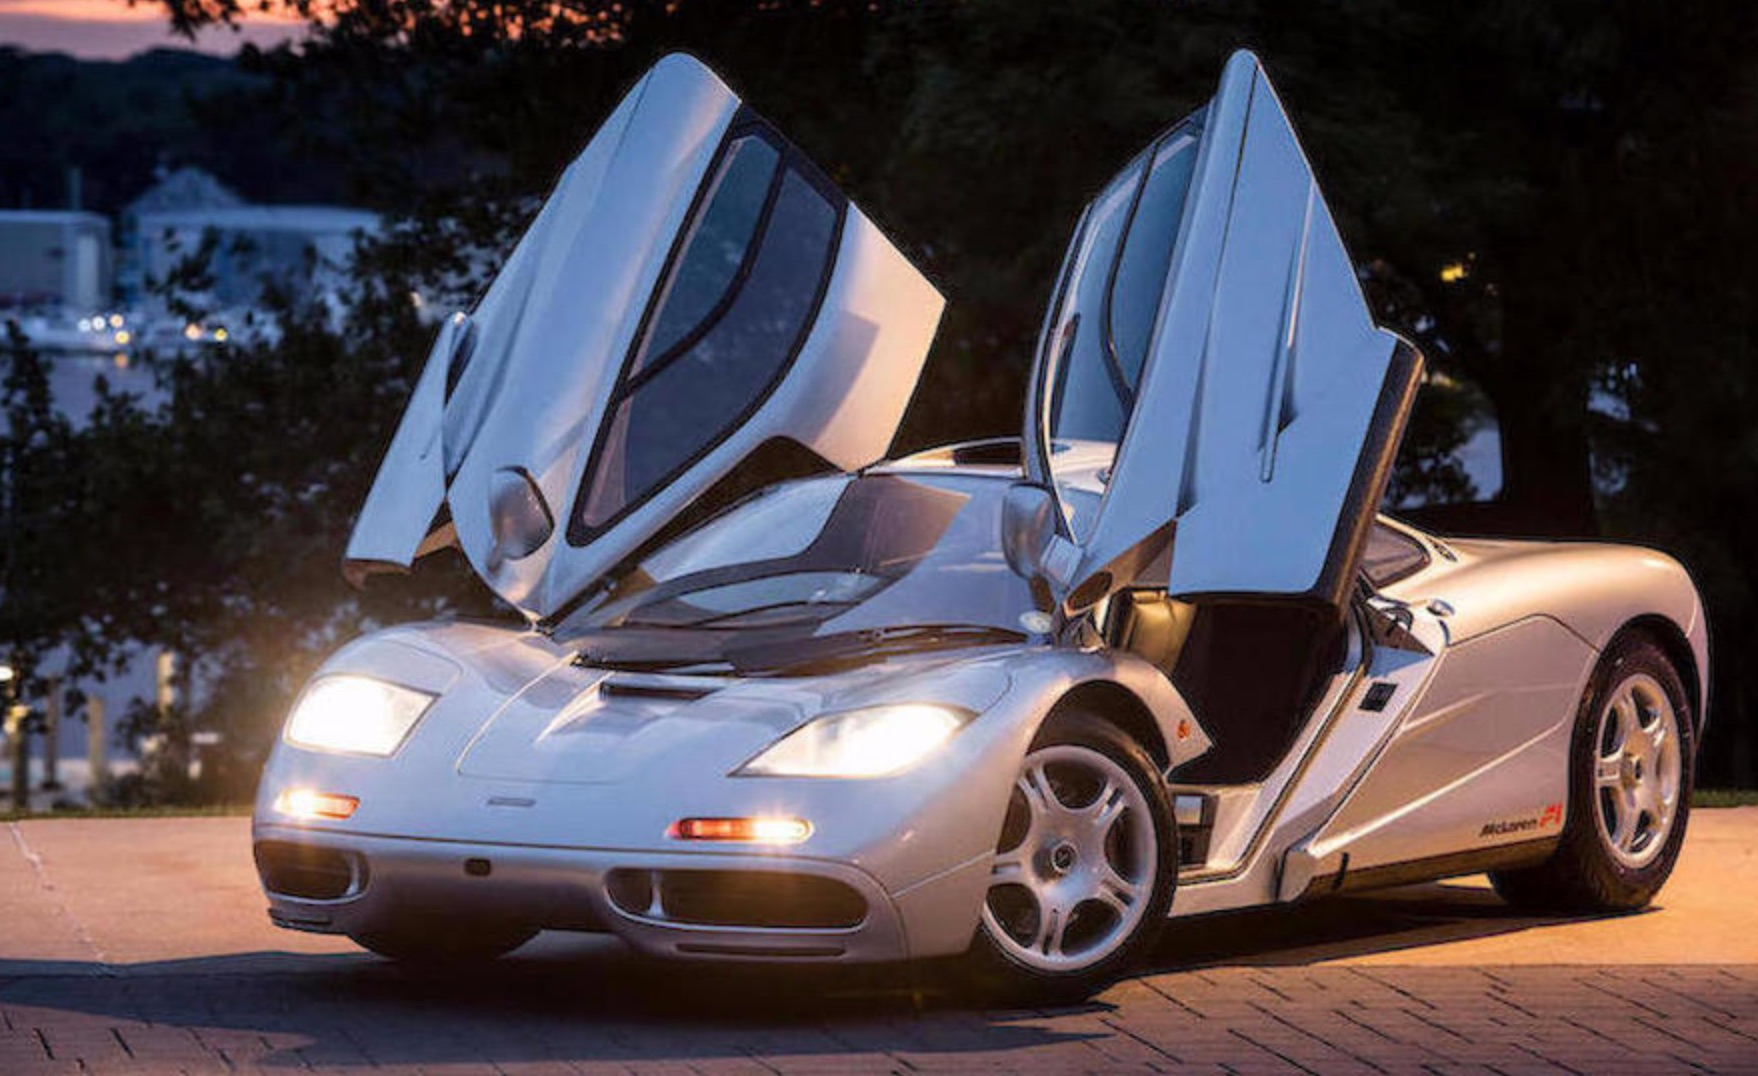 The First Us Street Legal Mclaren F1 Is For Sale